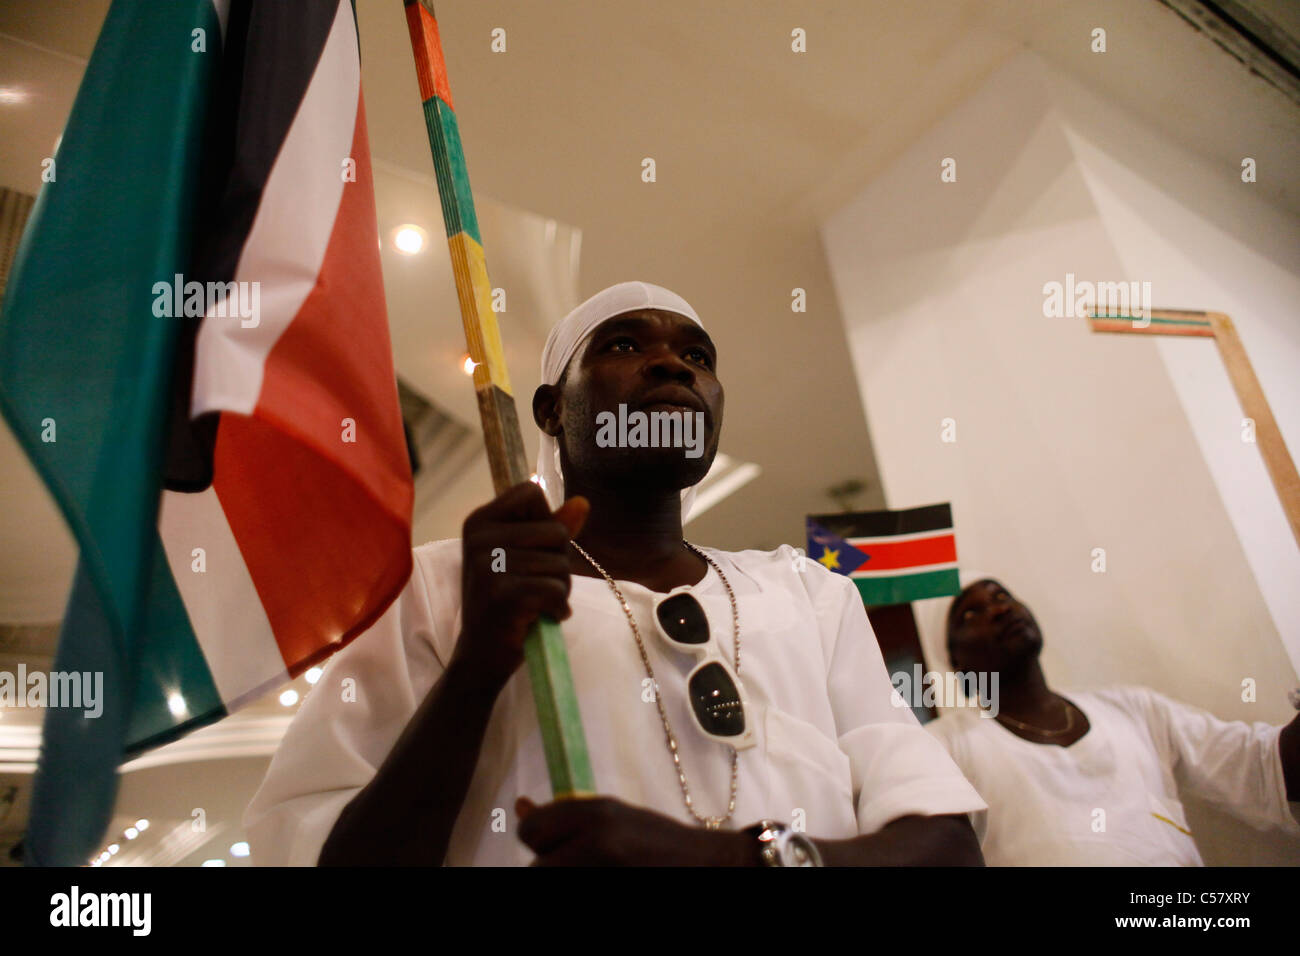 South Sudanese man holds the flag of Republic of South Sudan during independence celebrations - Stock Image